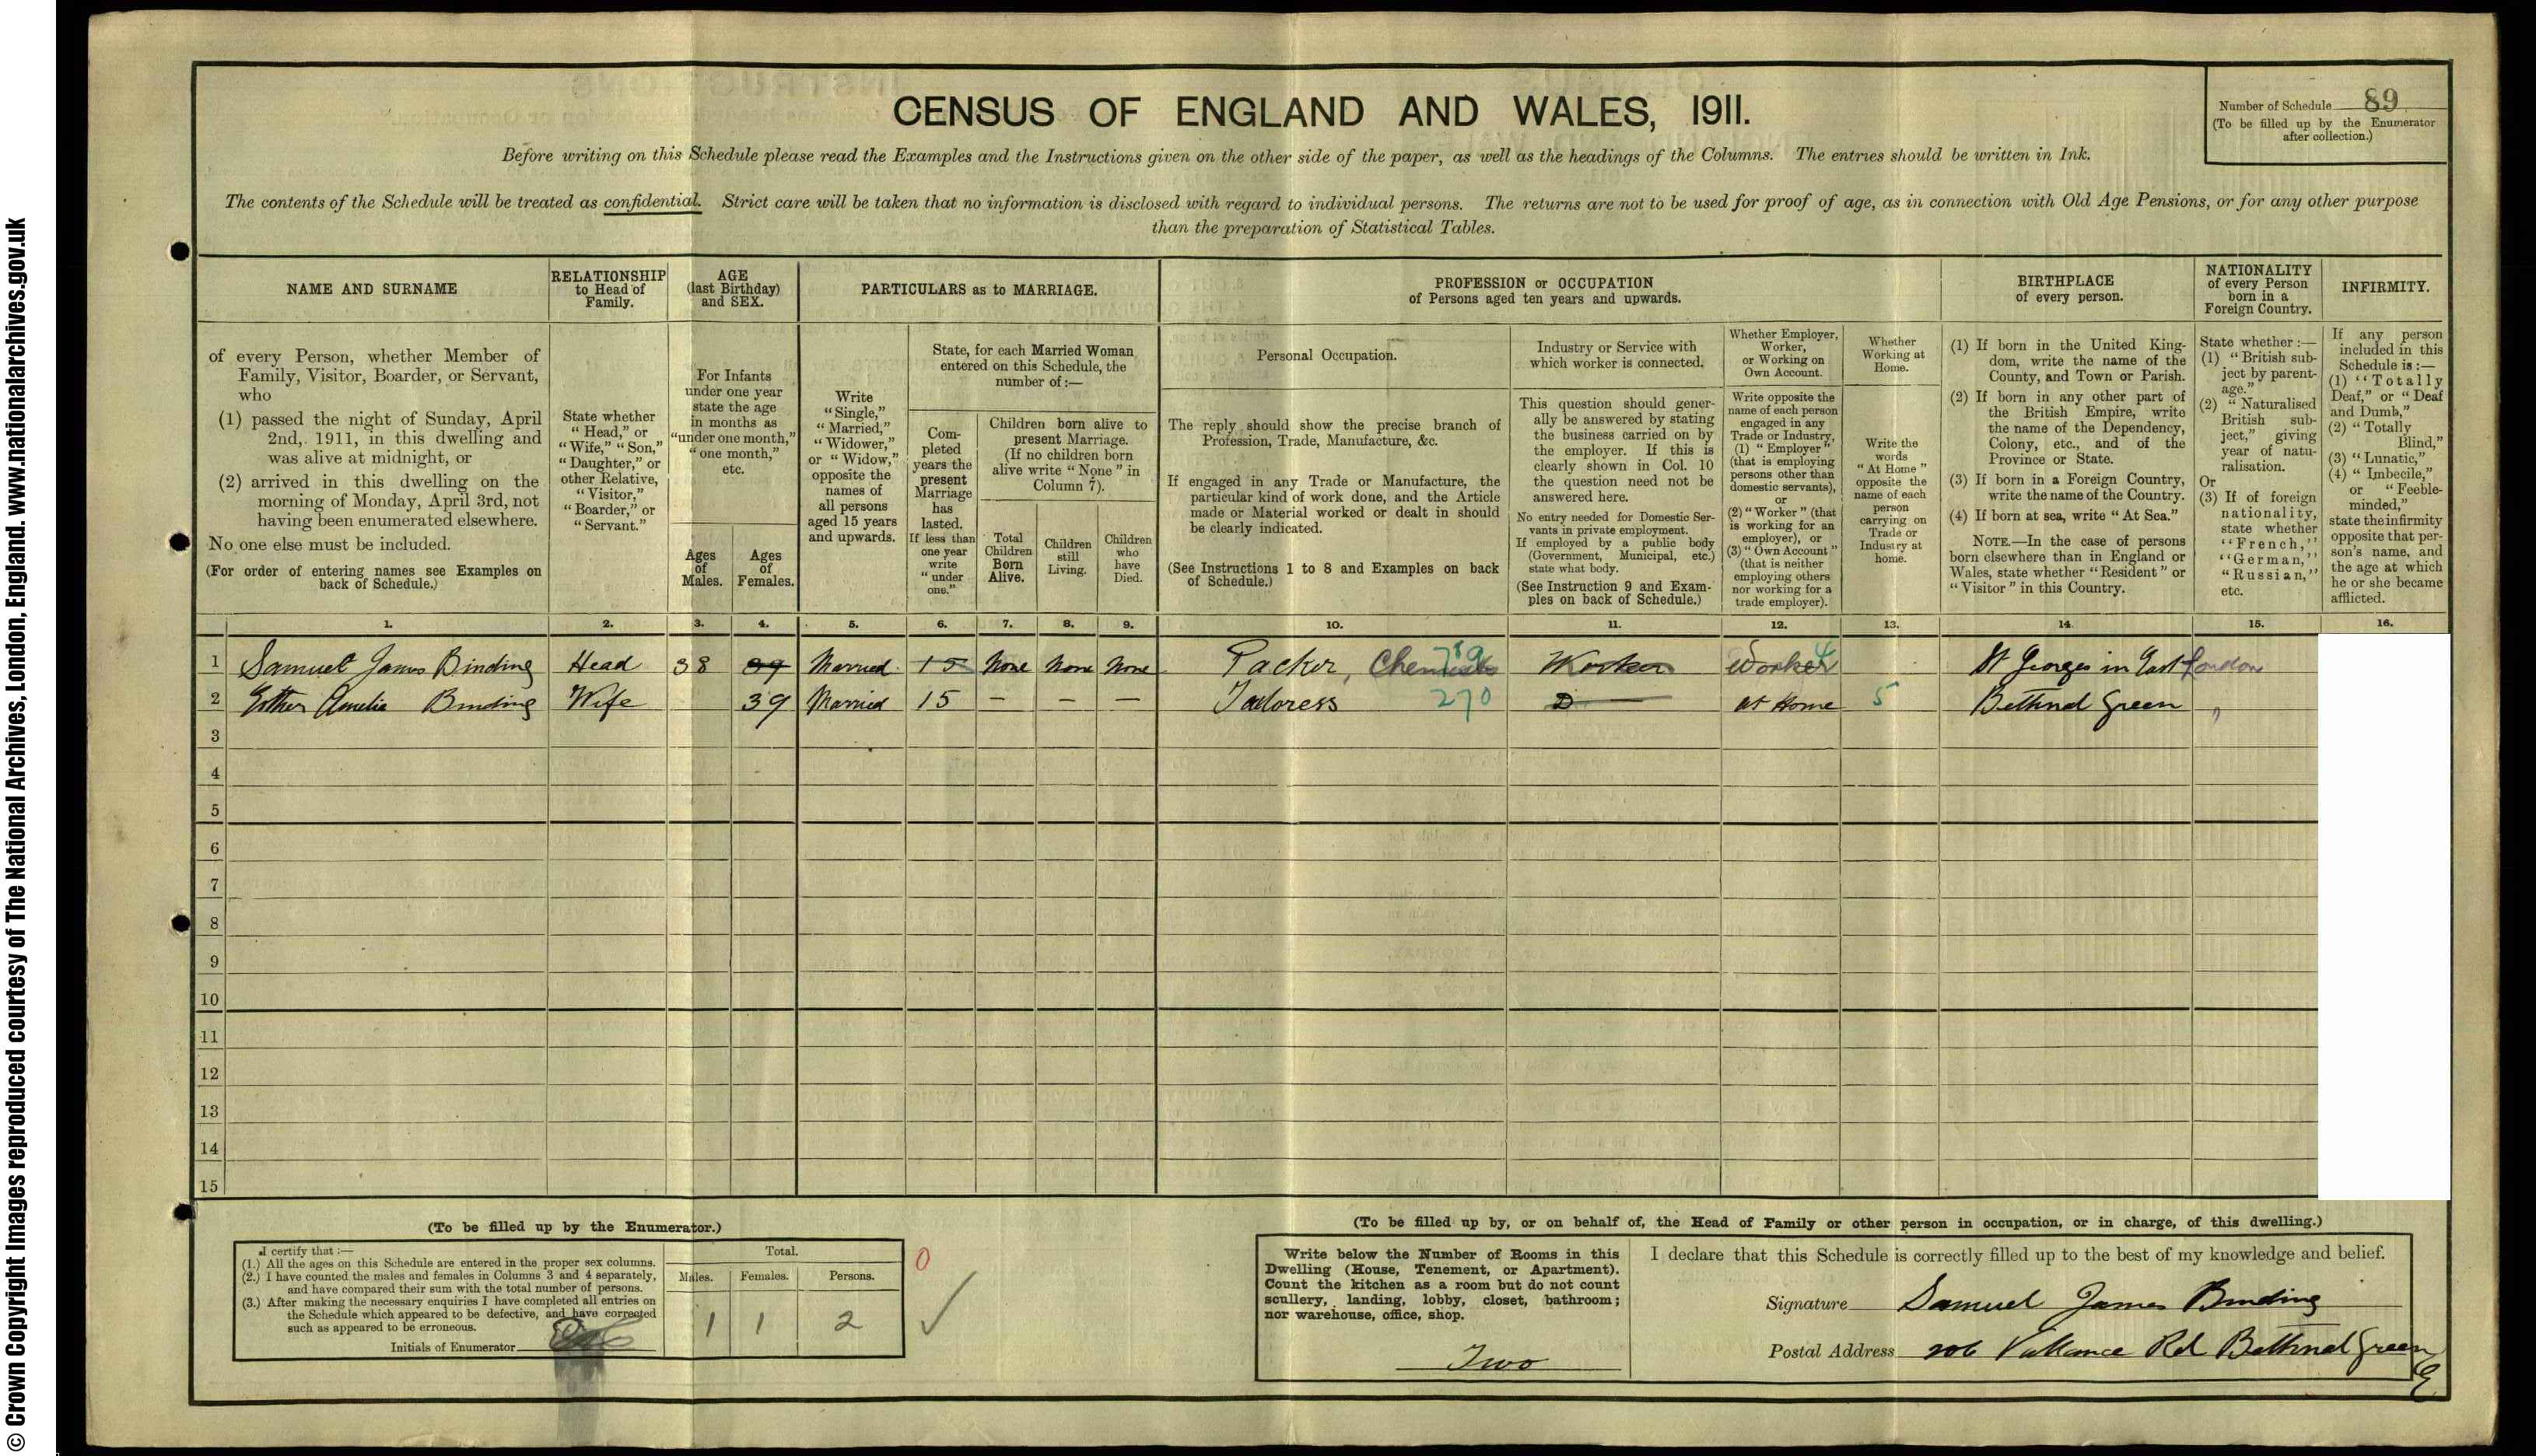 1911 England Census Record for Samuel James Binding